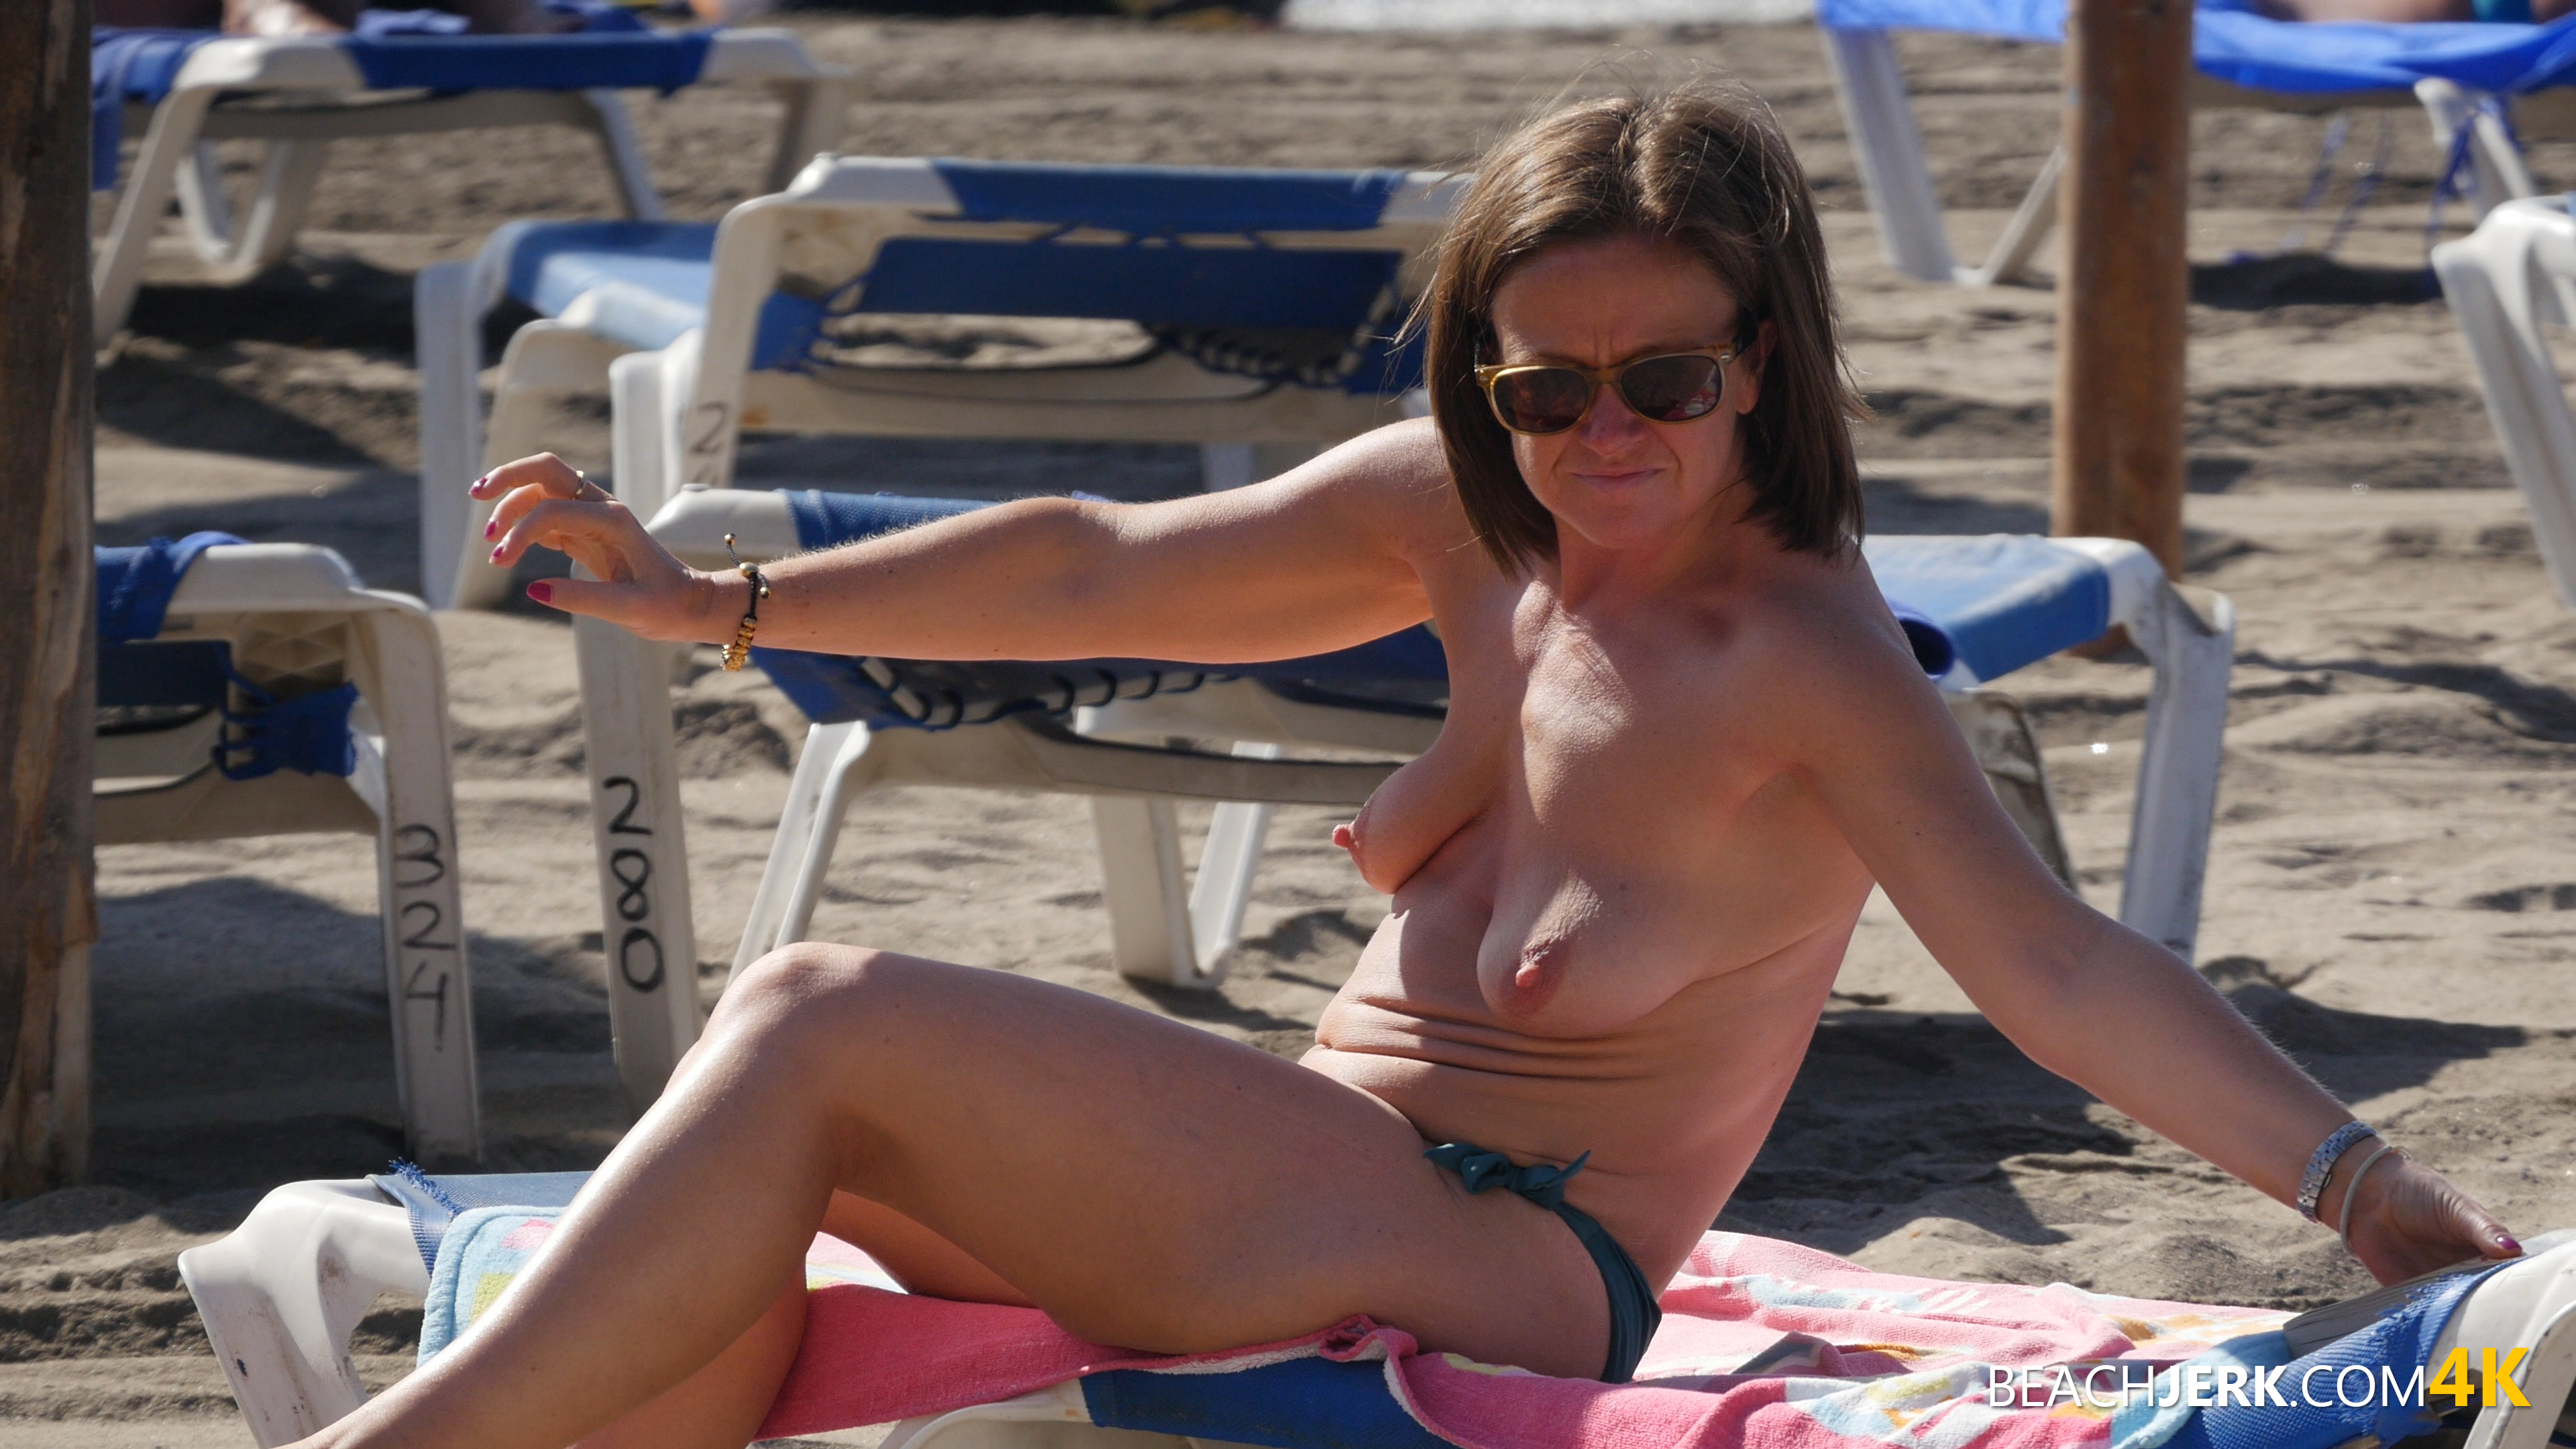 Nice tits topless beach something is